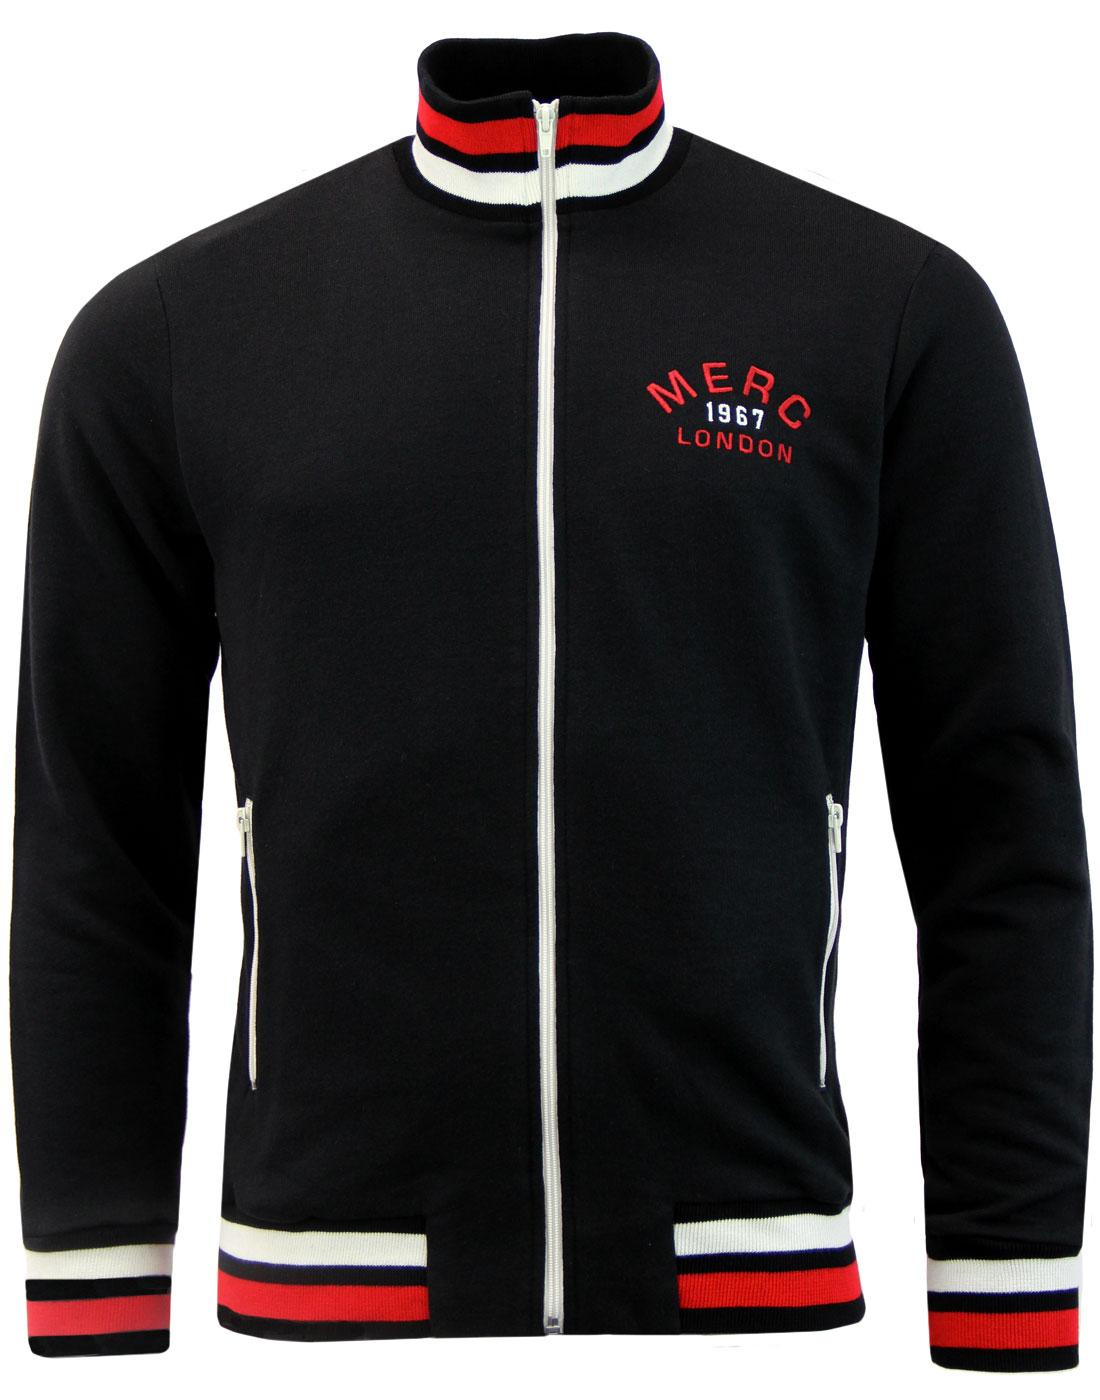 Dittmer MERC Retro Archive Funnel Neck Track Top